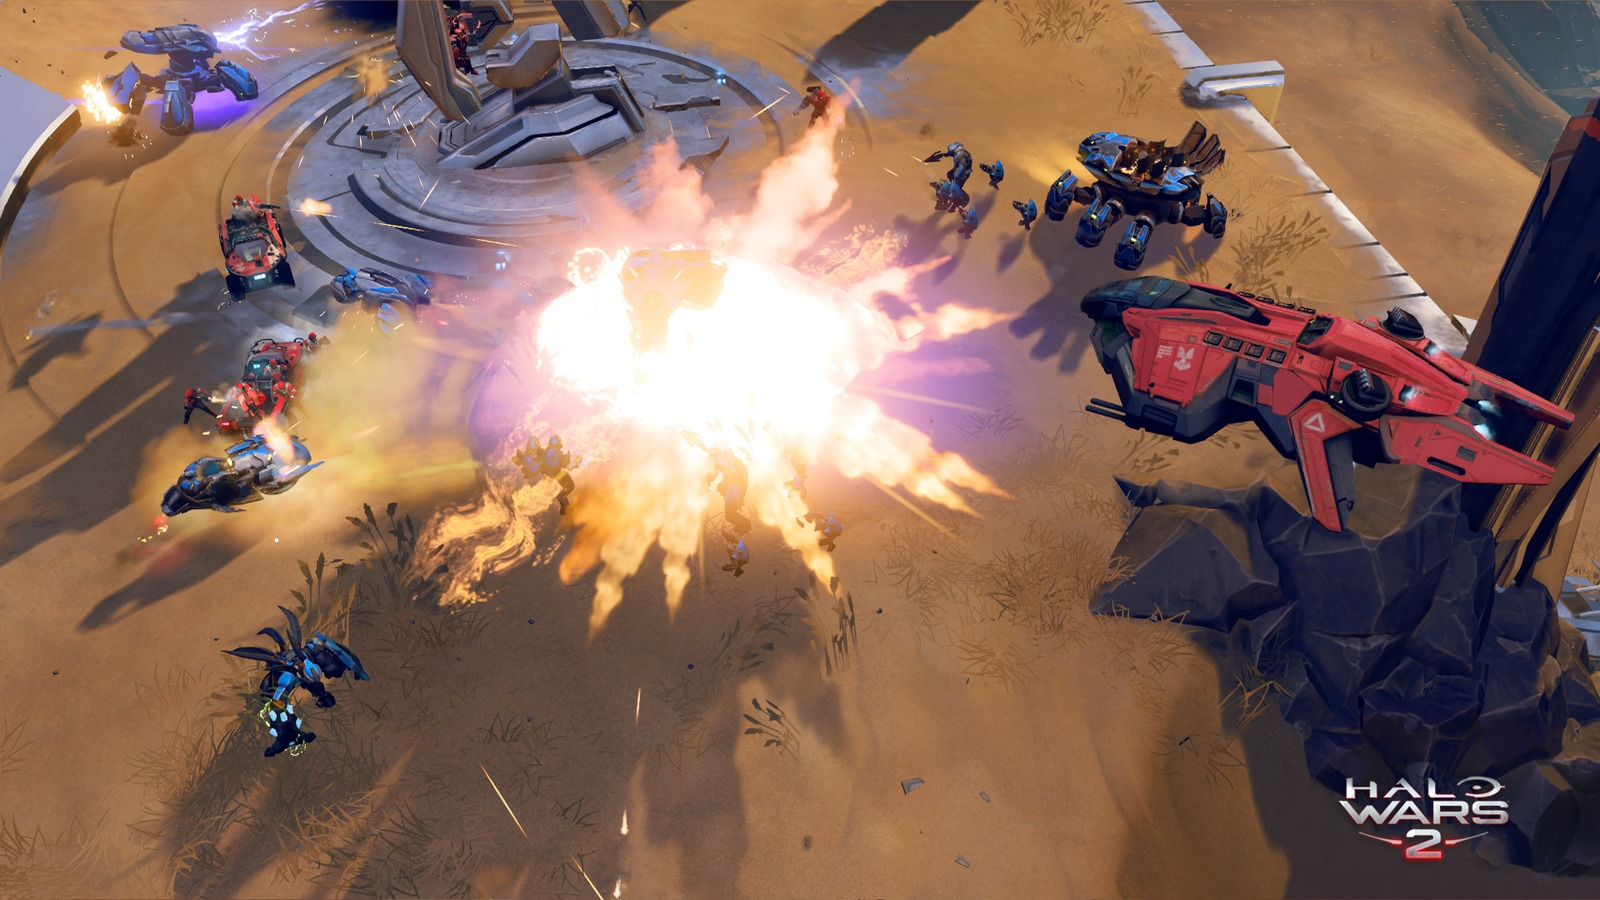 Halo Wars 2 for Xbox One image